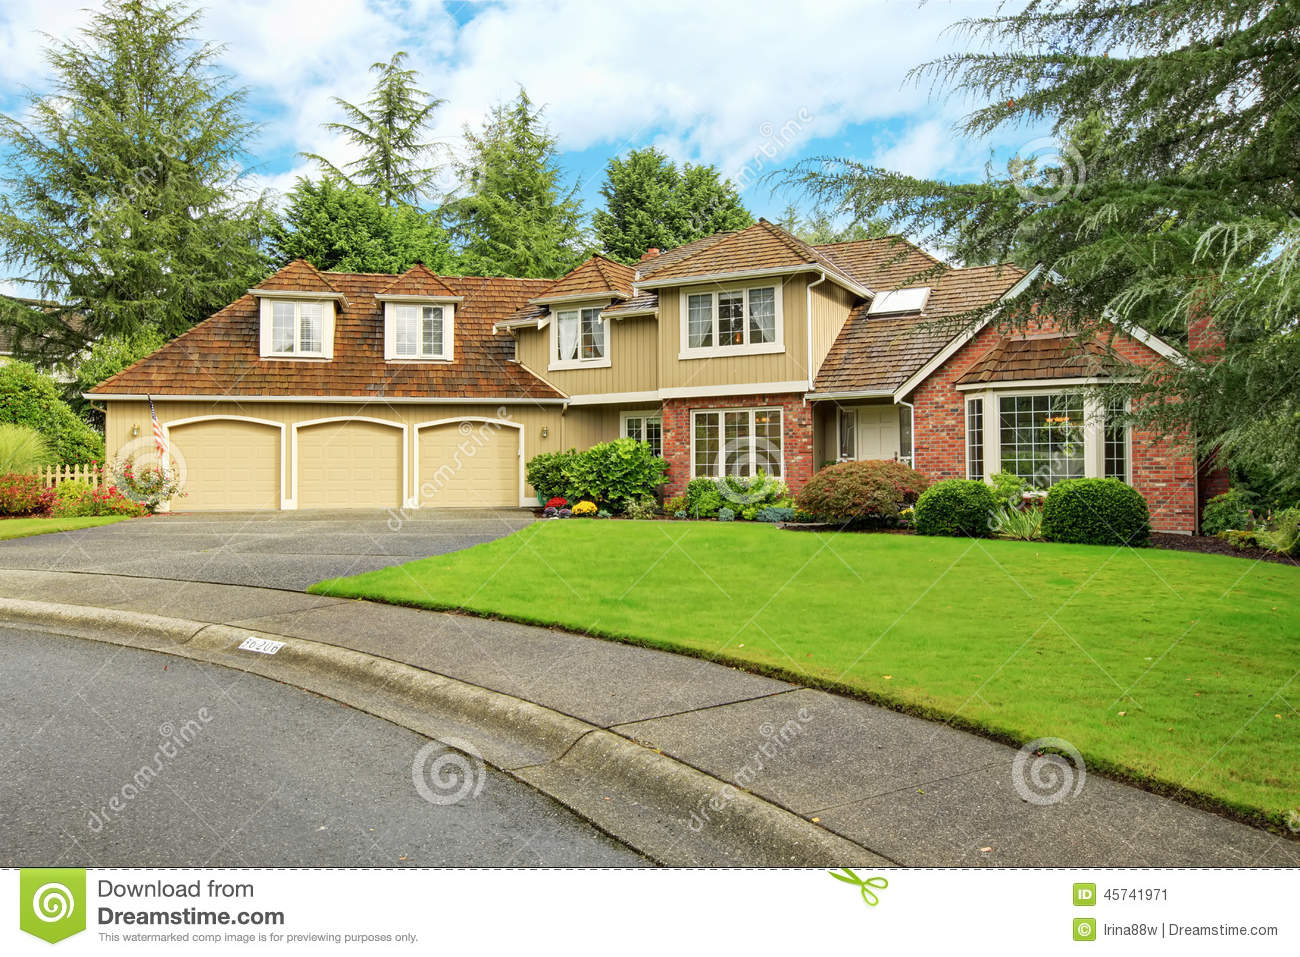 American real estate luxury house exterior with brick for American homes realty